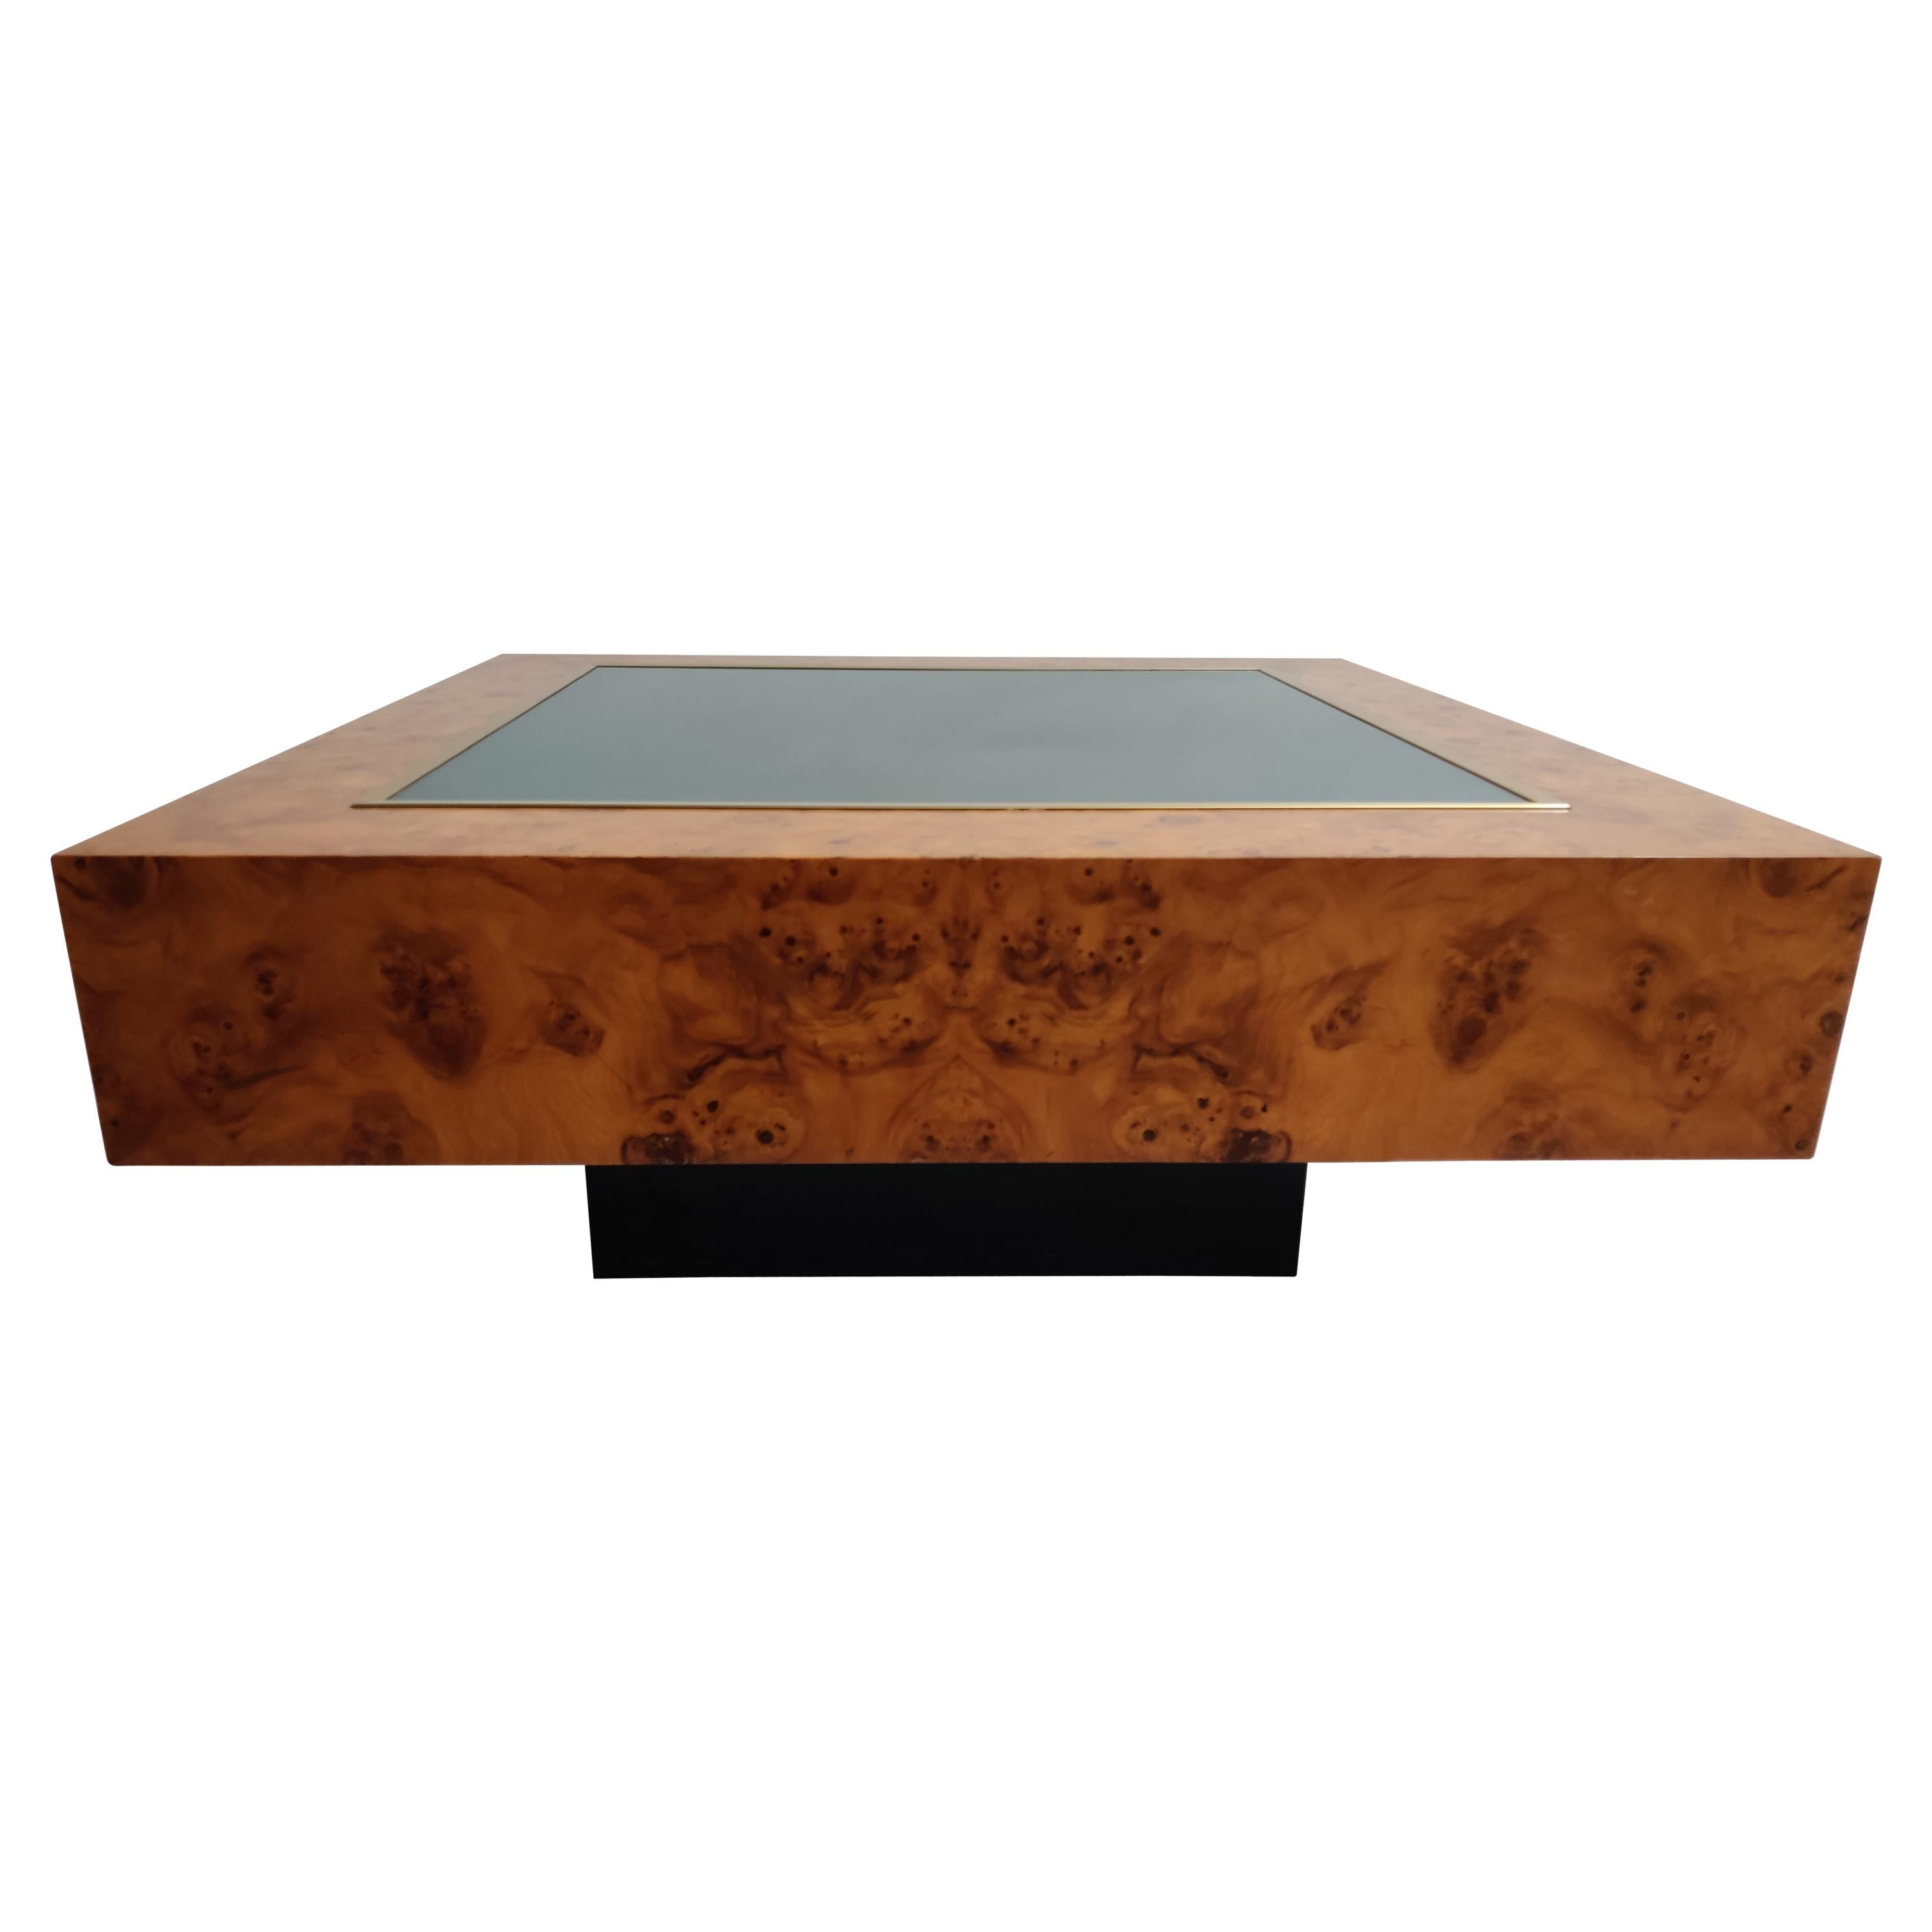 Vintage Pierre Cardin Brass, Glass and Burl Wood Coffee Table, 1970s, France